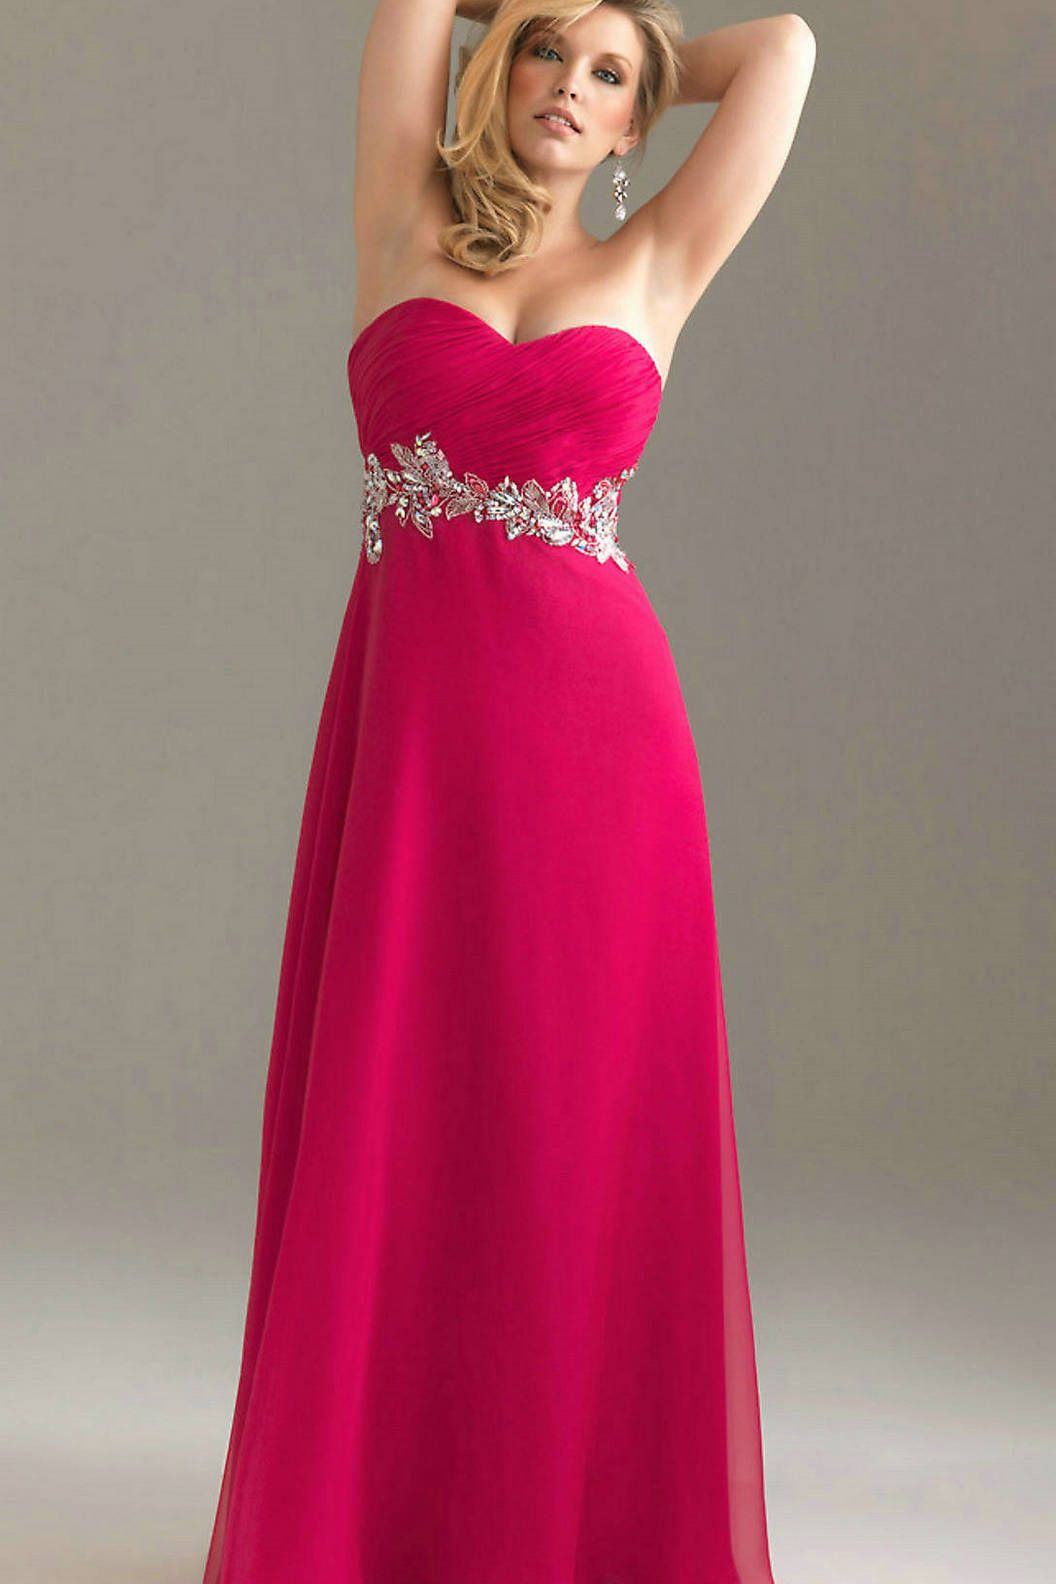 Fuchsia plus size dress gallery dresses design ideas full length strapless sequince embelished ruched bodice fuchsia full length strapless sequince embelished ruched bodice fuchsia ombrellifo Gallery